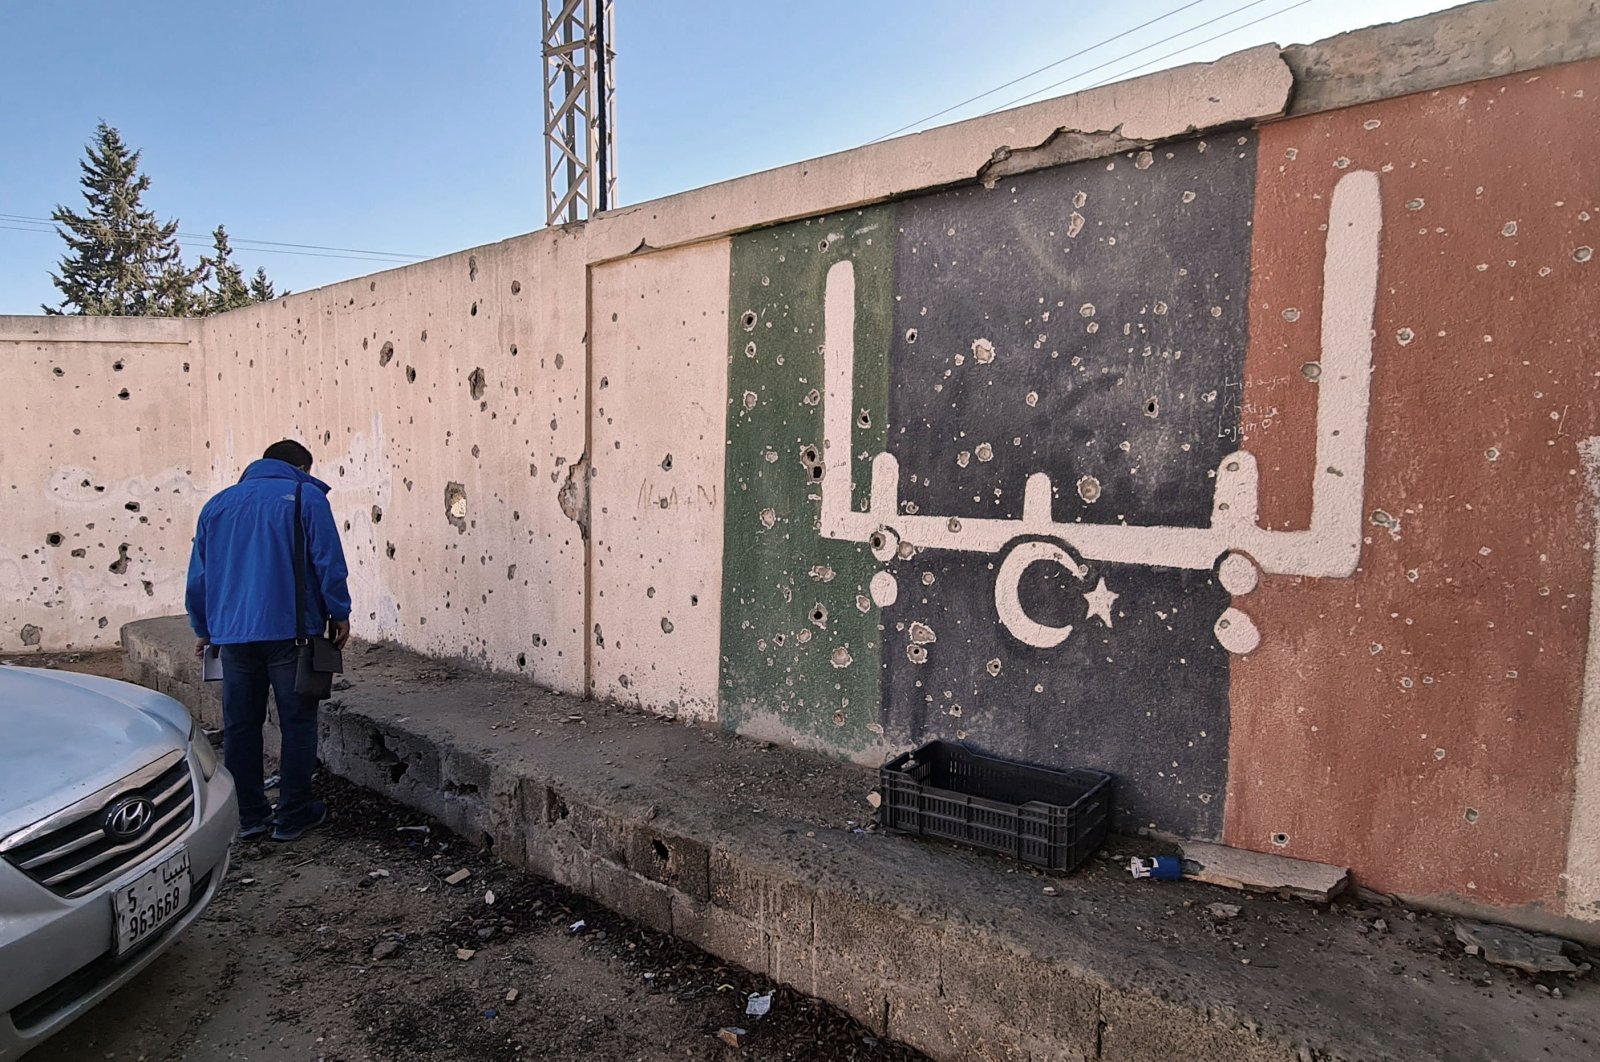 """A Libyan stands in front of a school, which was damaged during fighting between rival factions, in the capital Tripoli's suburb of Ain Zara, Nov. 19, 2020. The writing on the wall reads """"Libya"""" in Arabic. (AFP Photo)"""